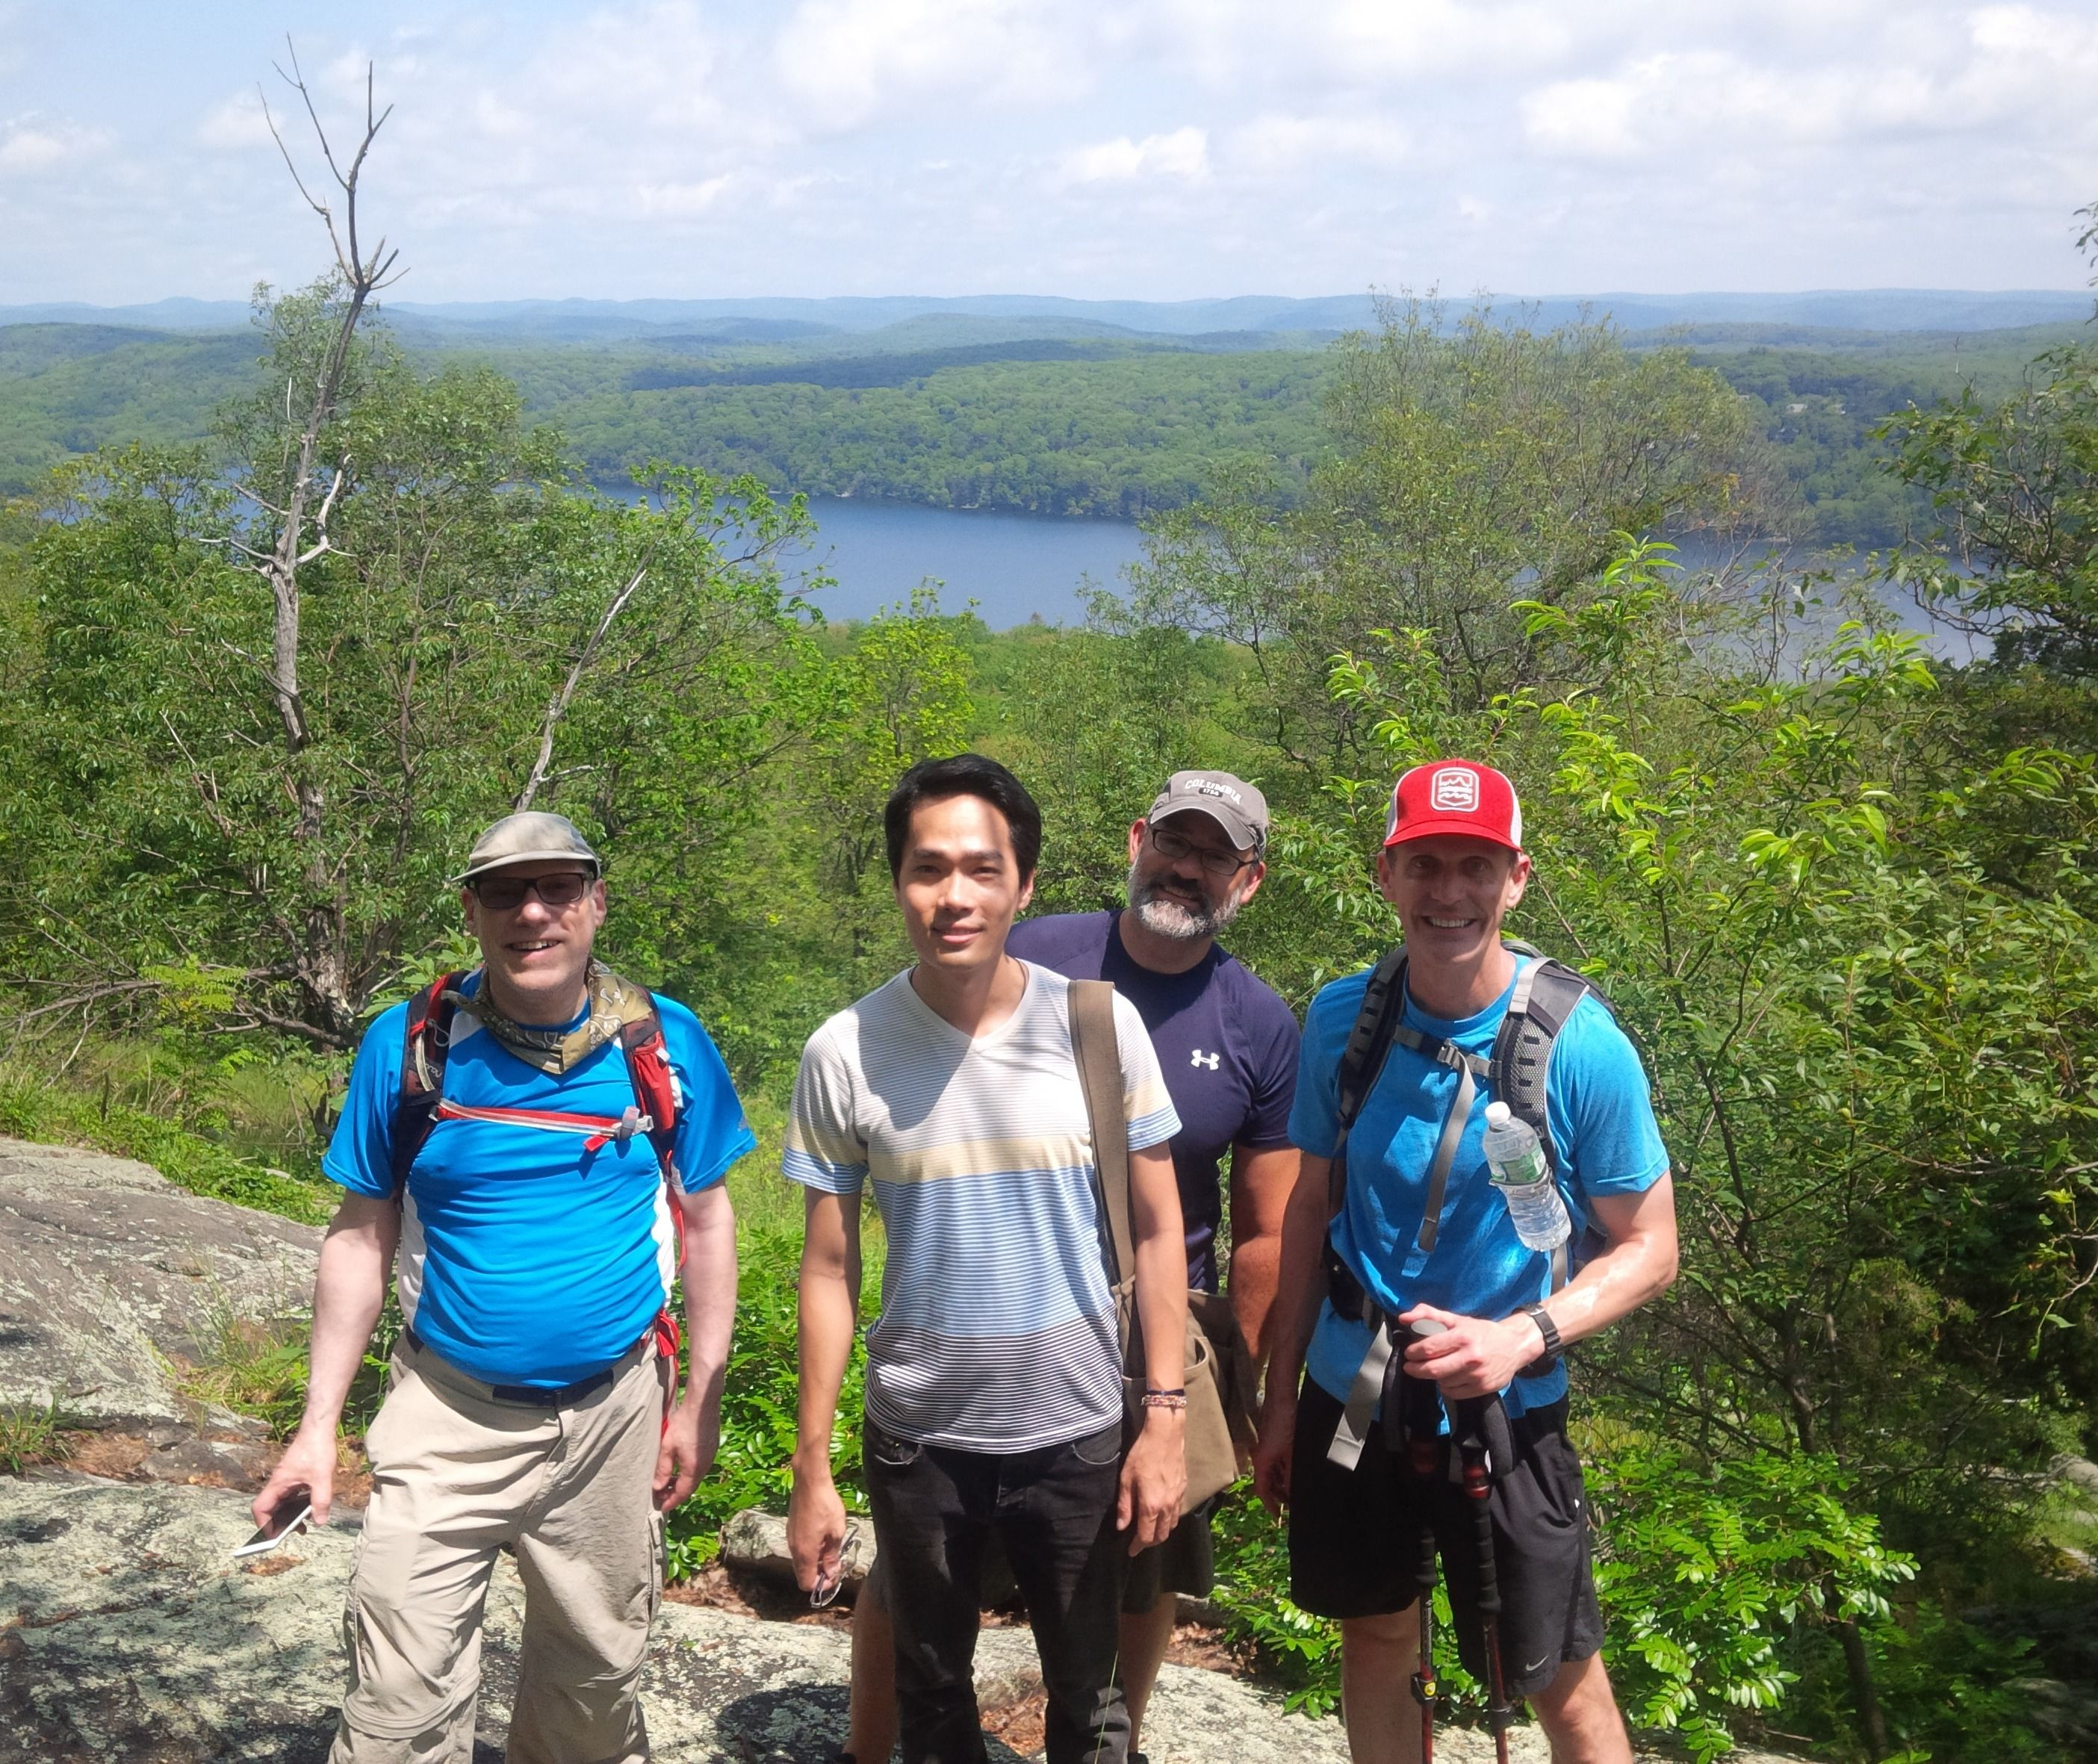 from Louie gay male sc hiking groups